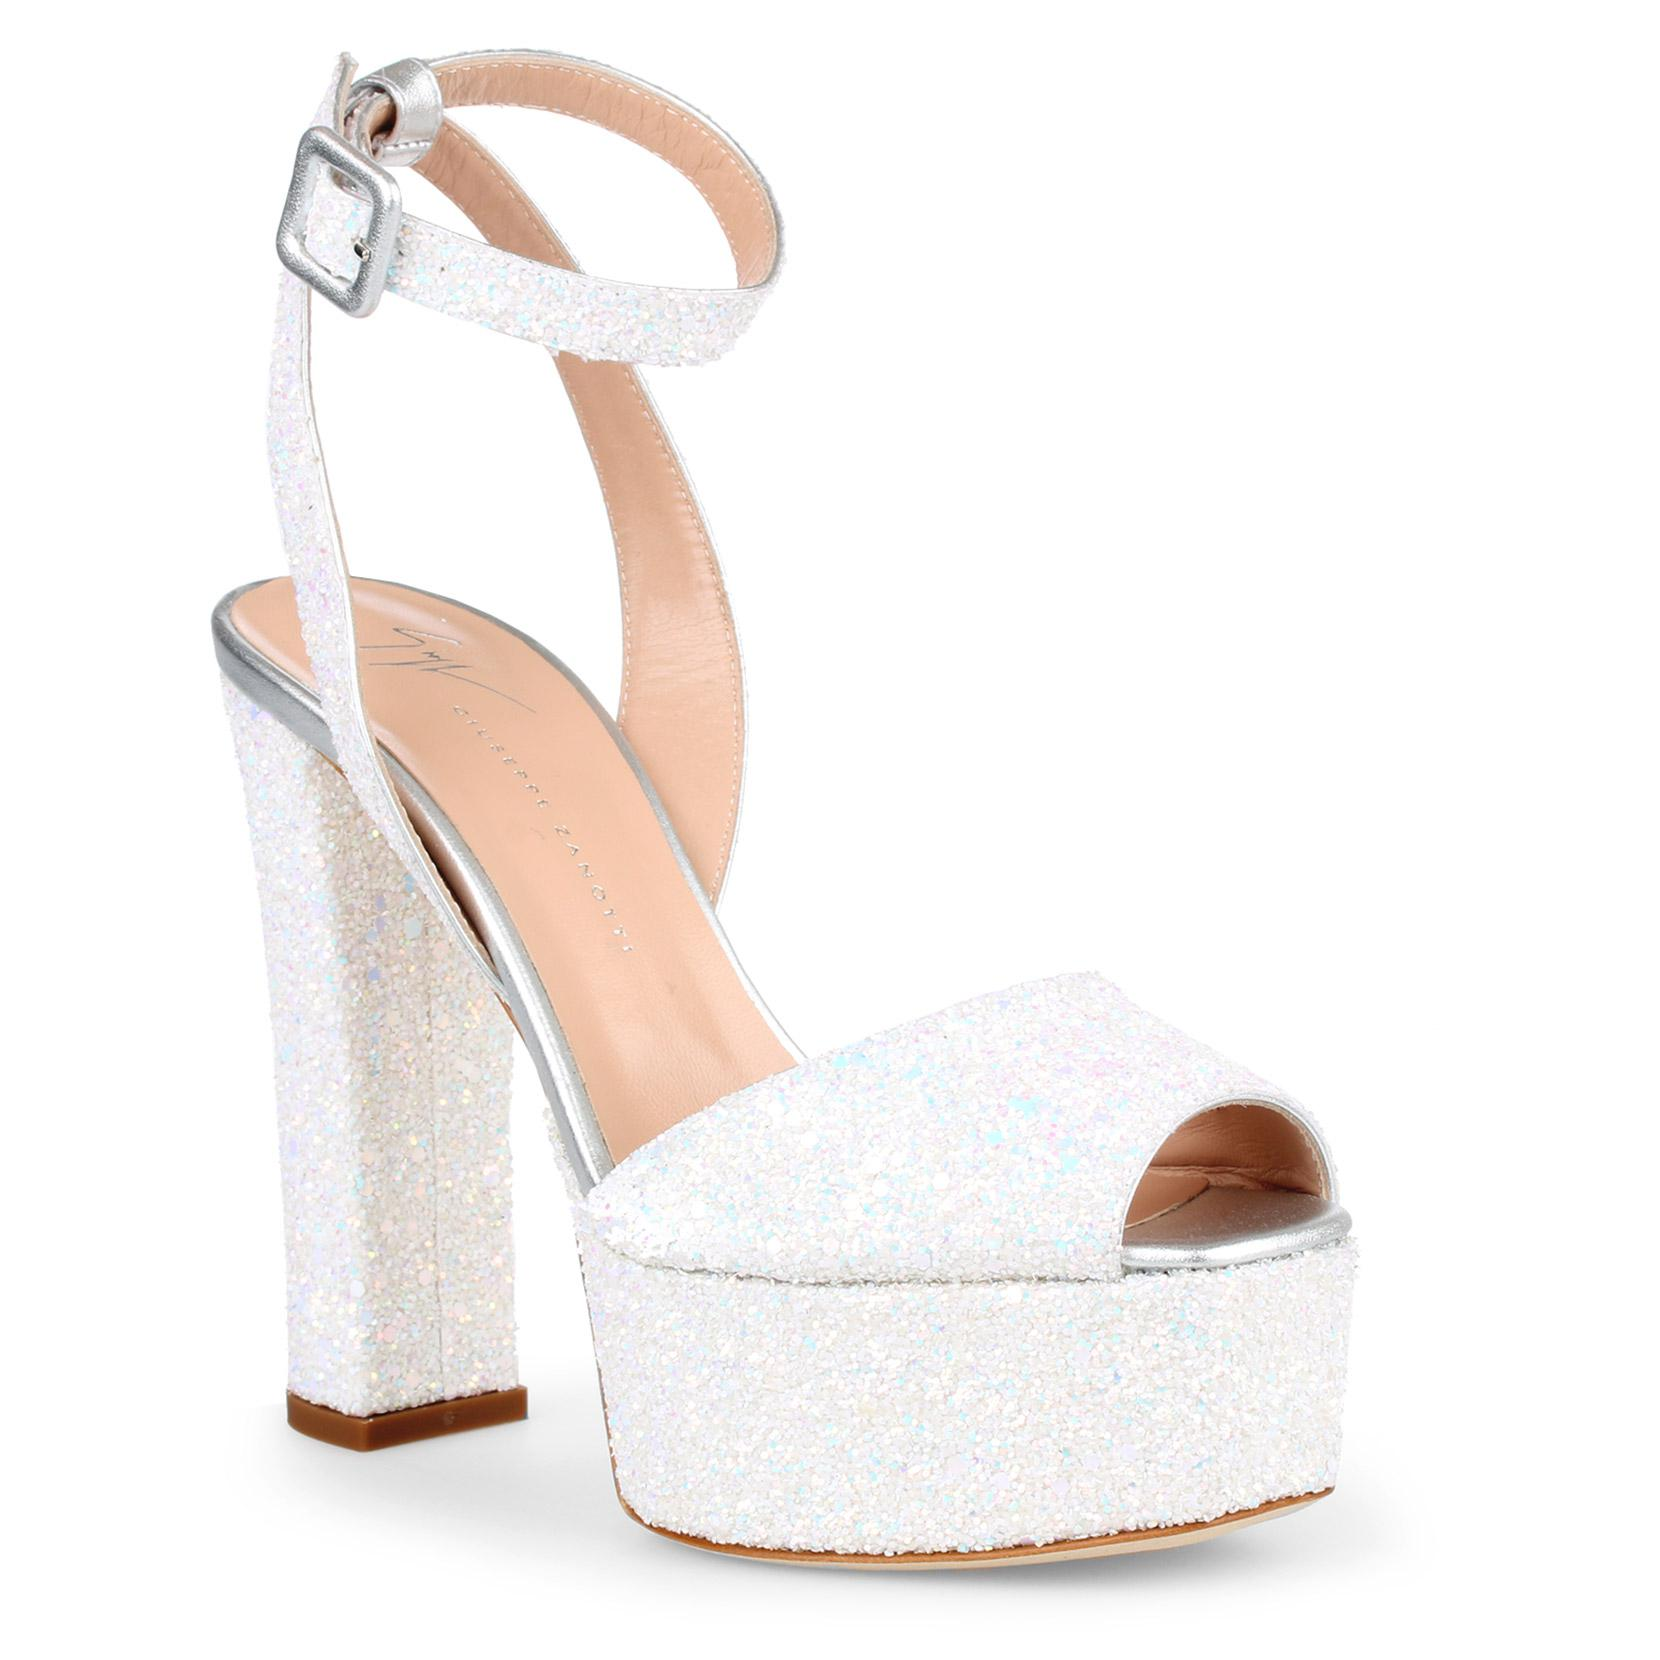 101520b2e4a42 Giuseppe Zanotti Betty White Glitter Sandals in White - Lyst